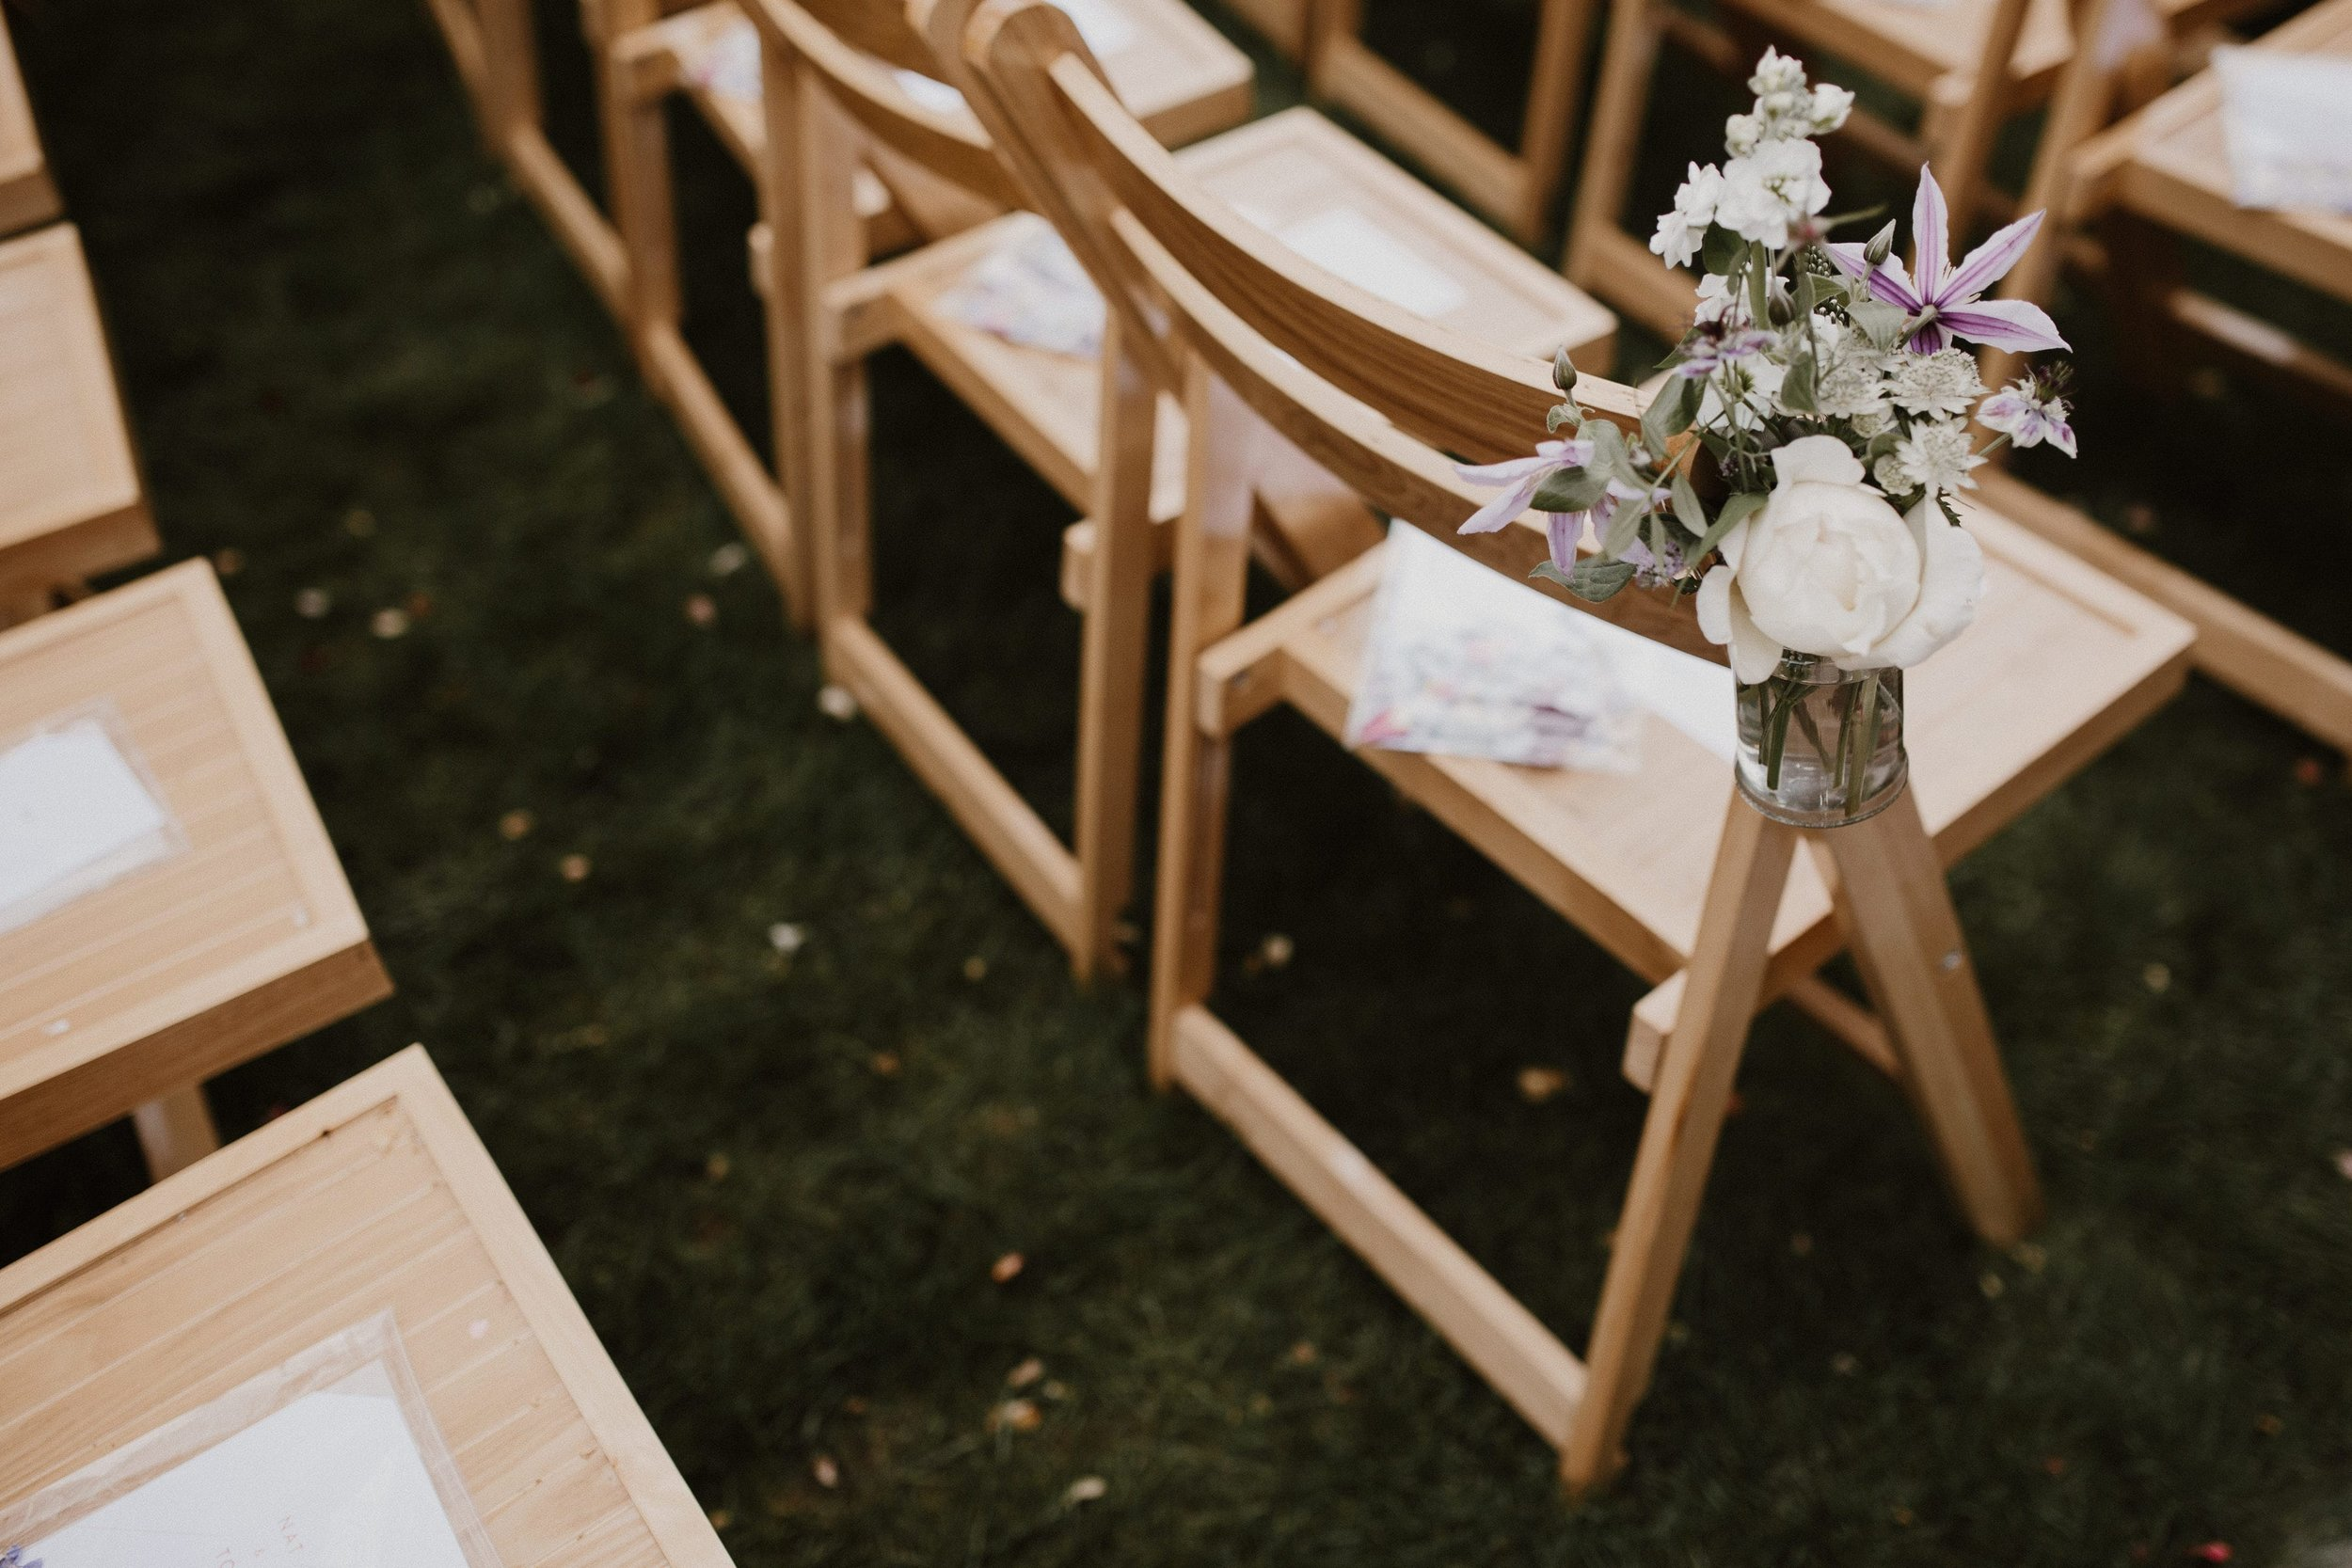 Nat and Tom - 01 - Venue and Details - Sara Lincoln Photography-11-min.jpg